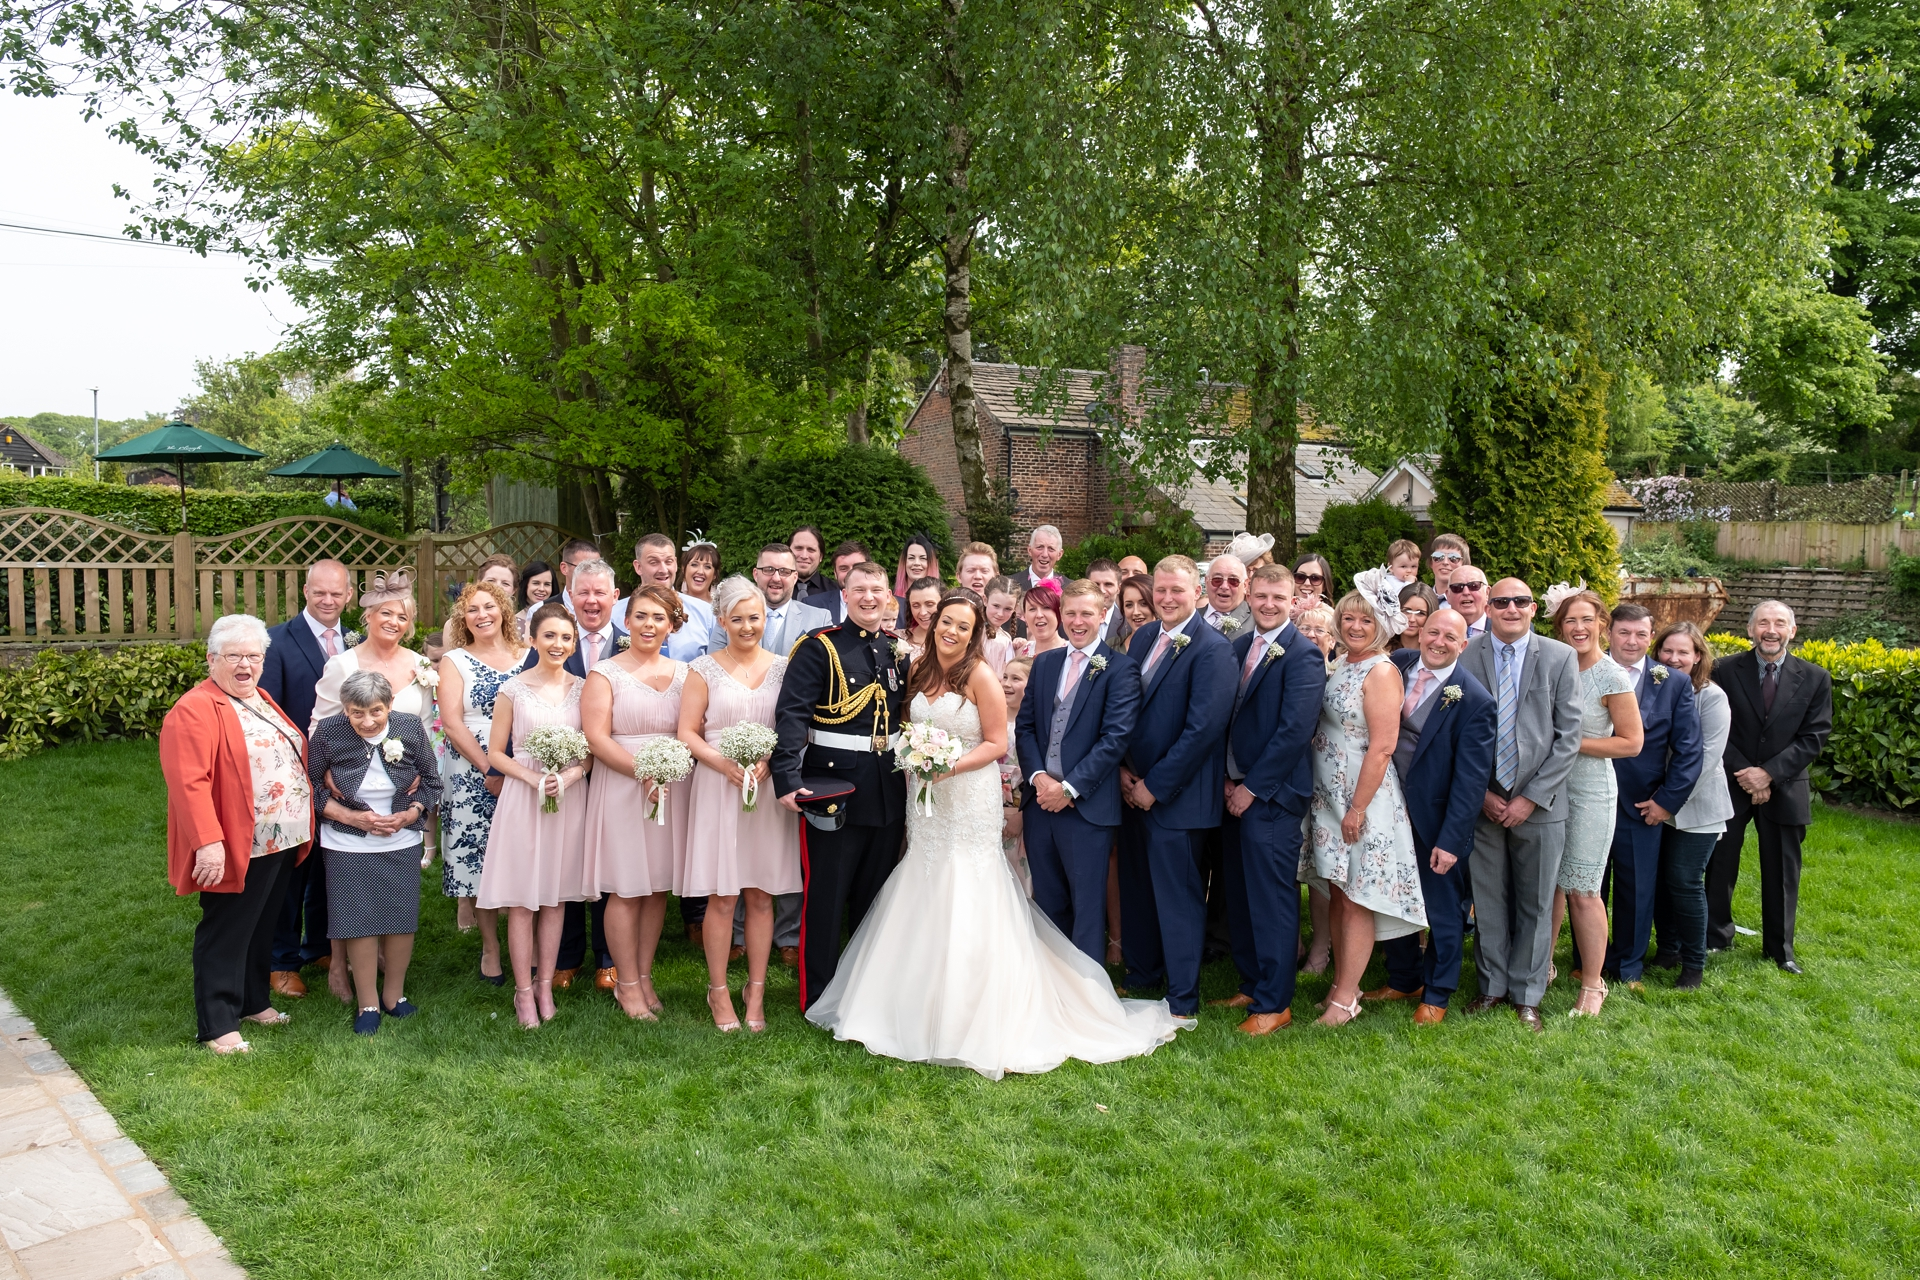 wedding the plough endon cheshire photographer photo 22.jpg